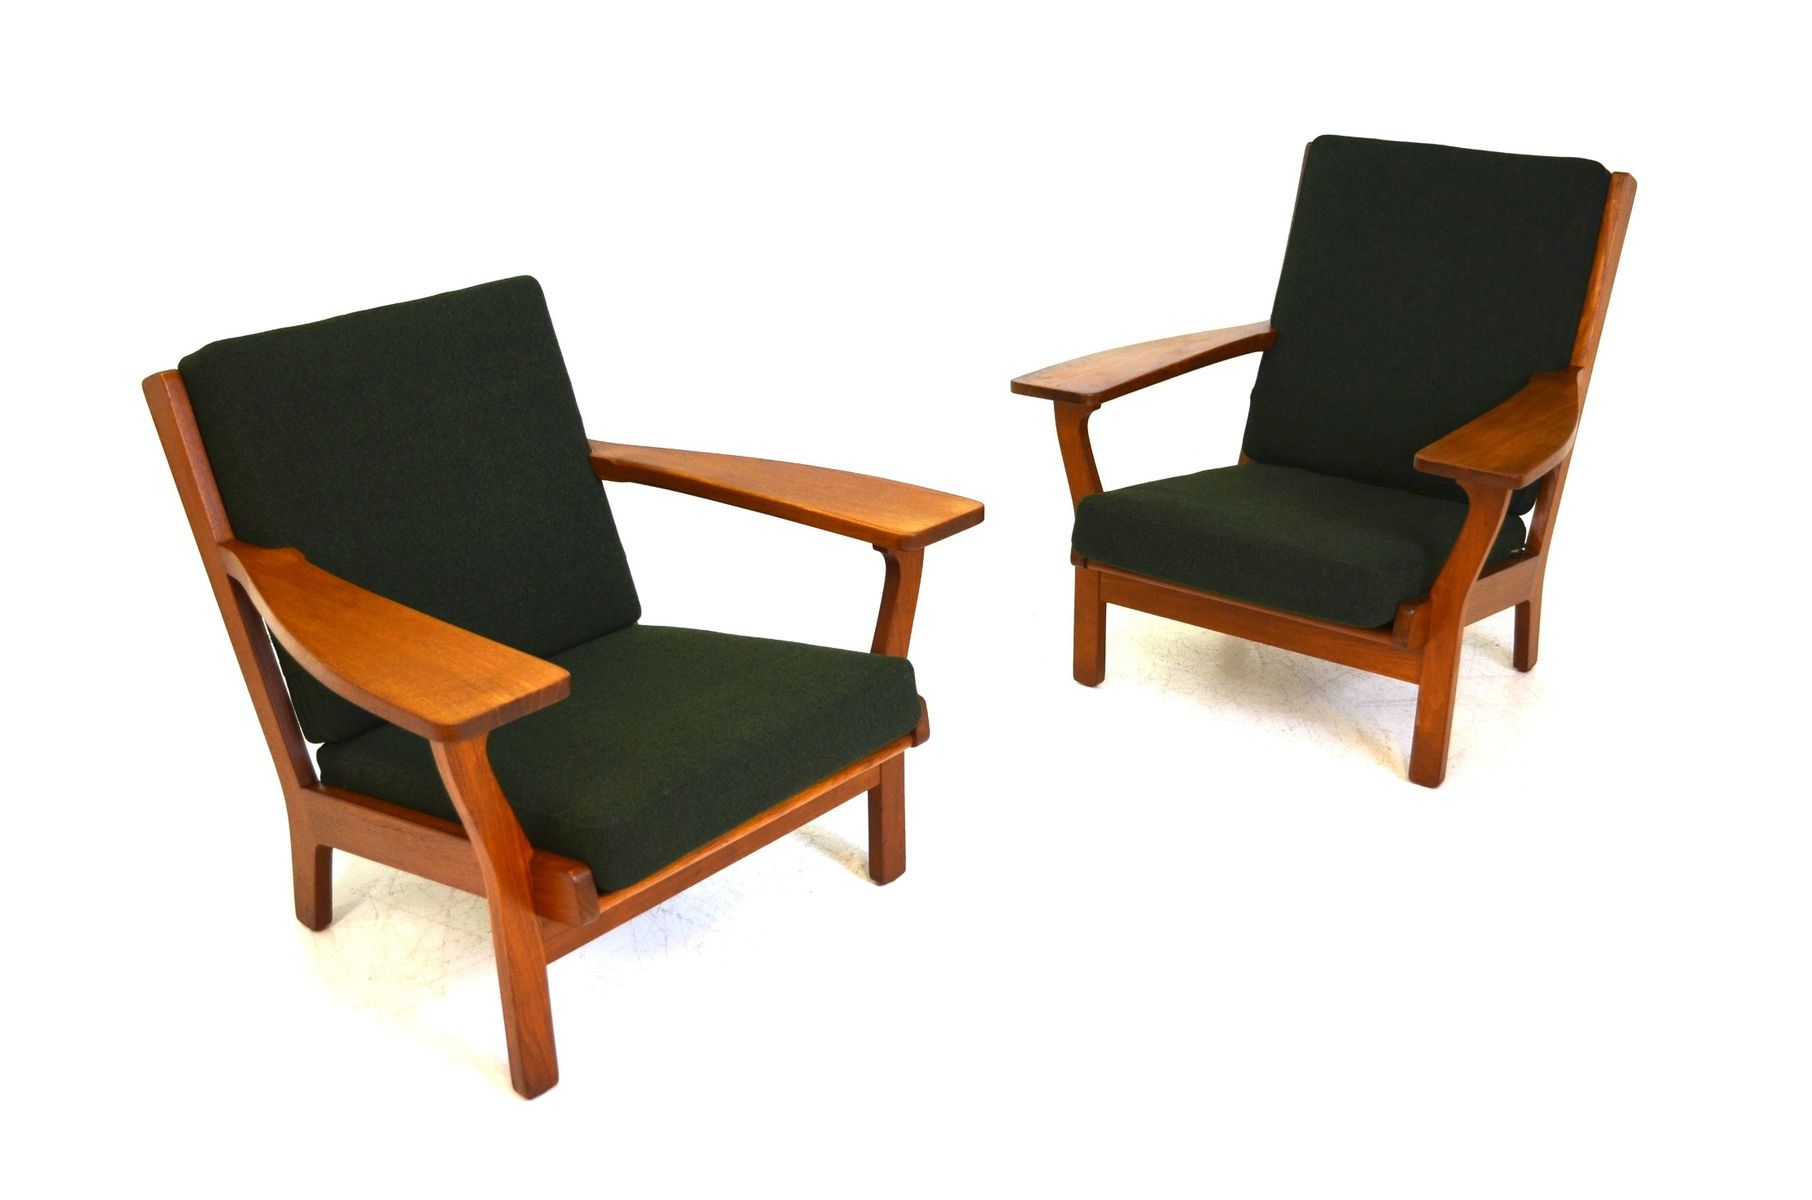 GE320 Sofa & Easy Chairs Set by Hans J Wegner for Getama 1950s